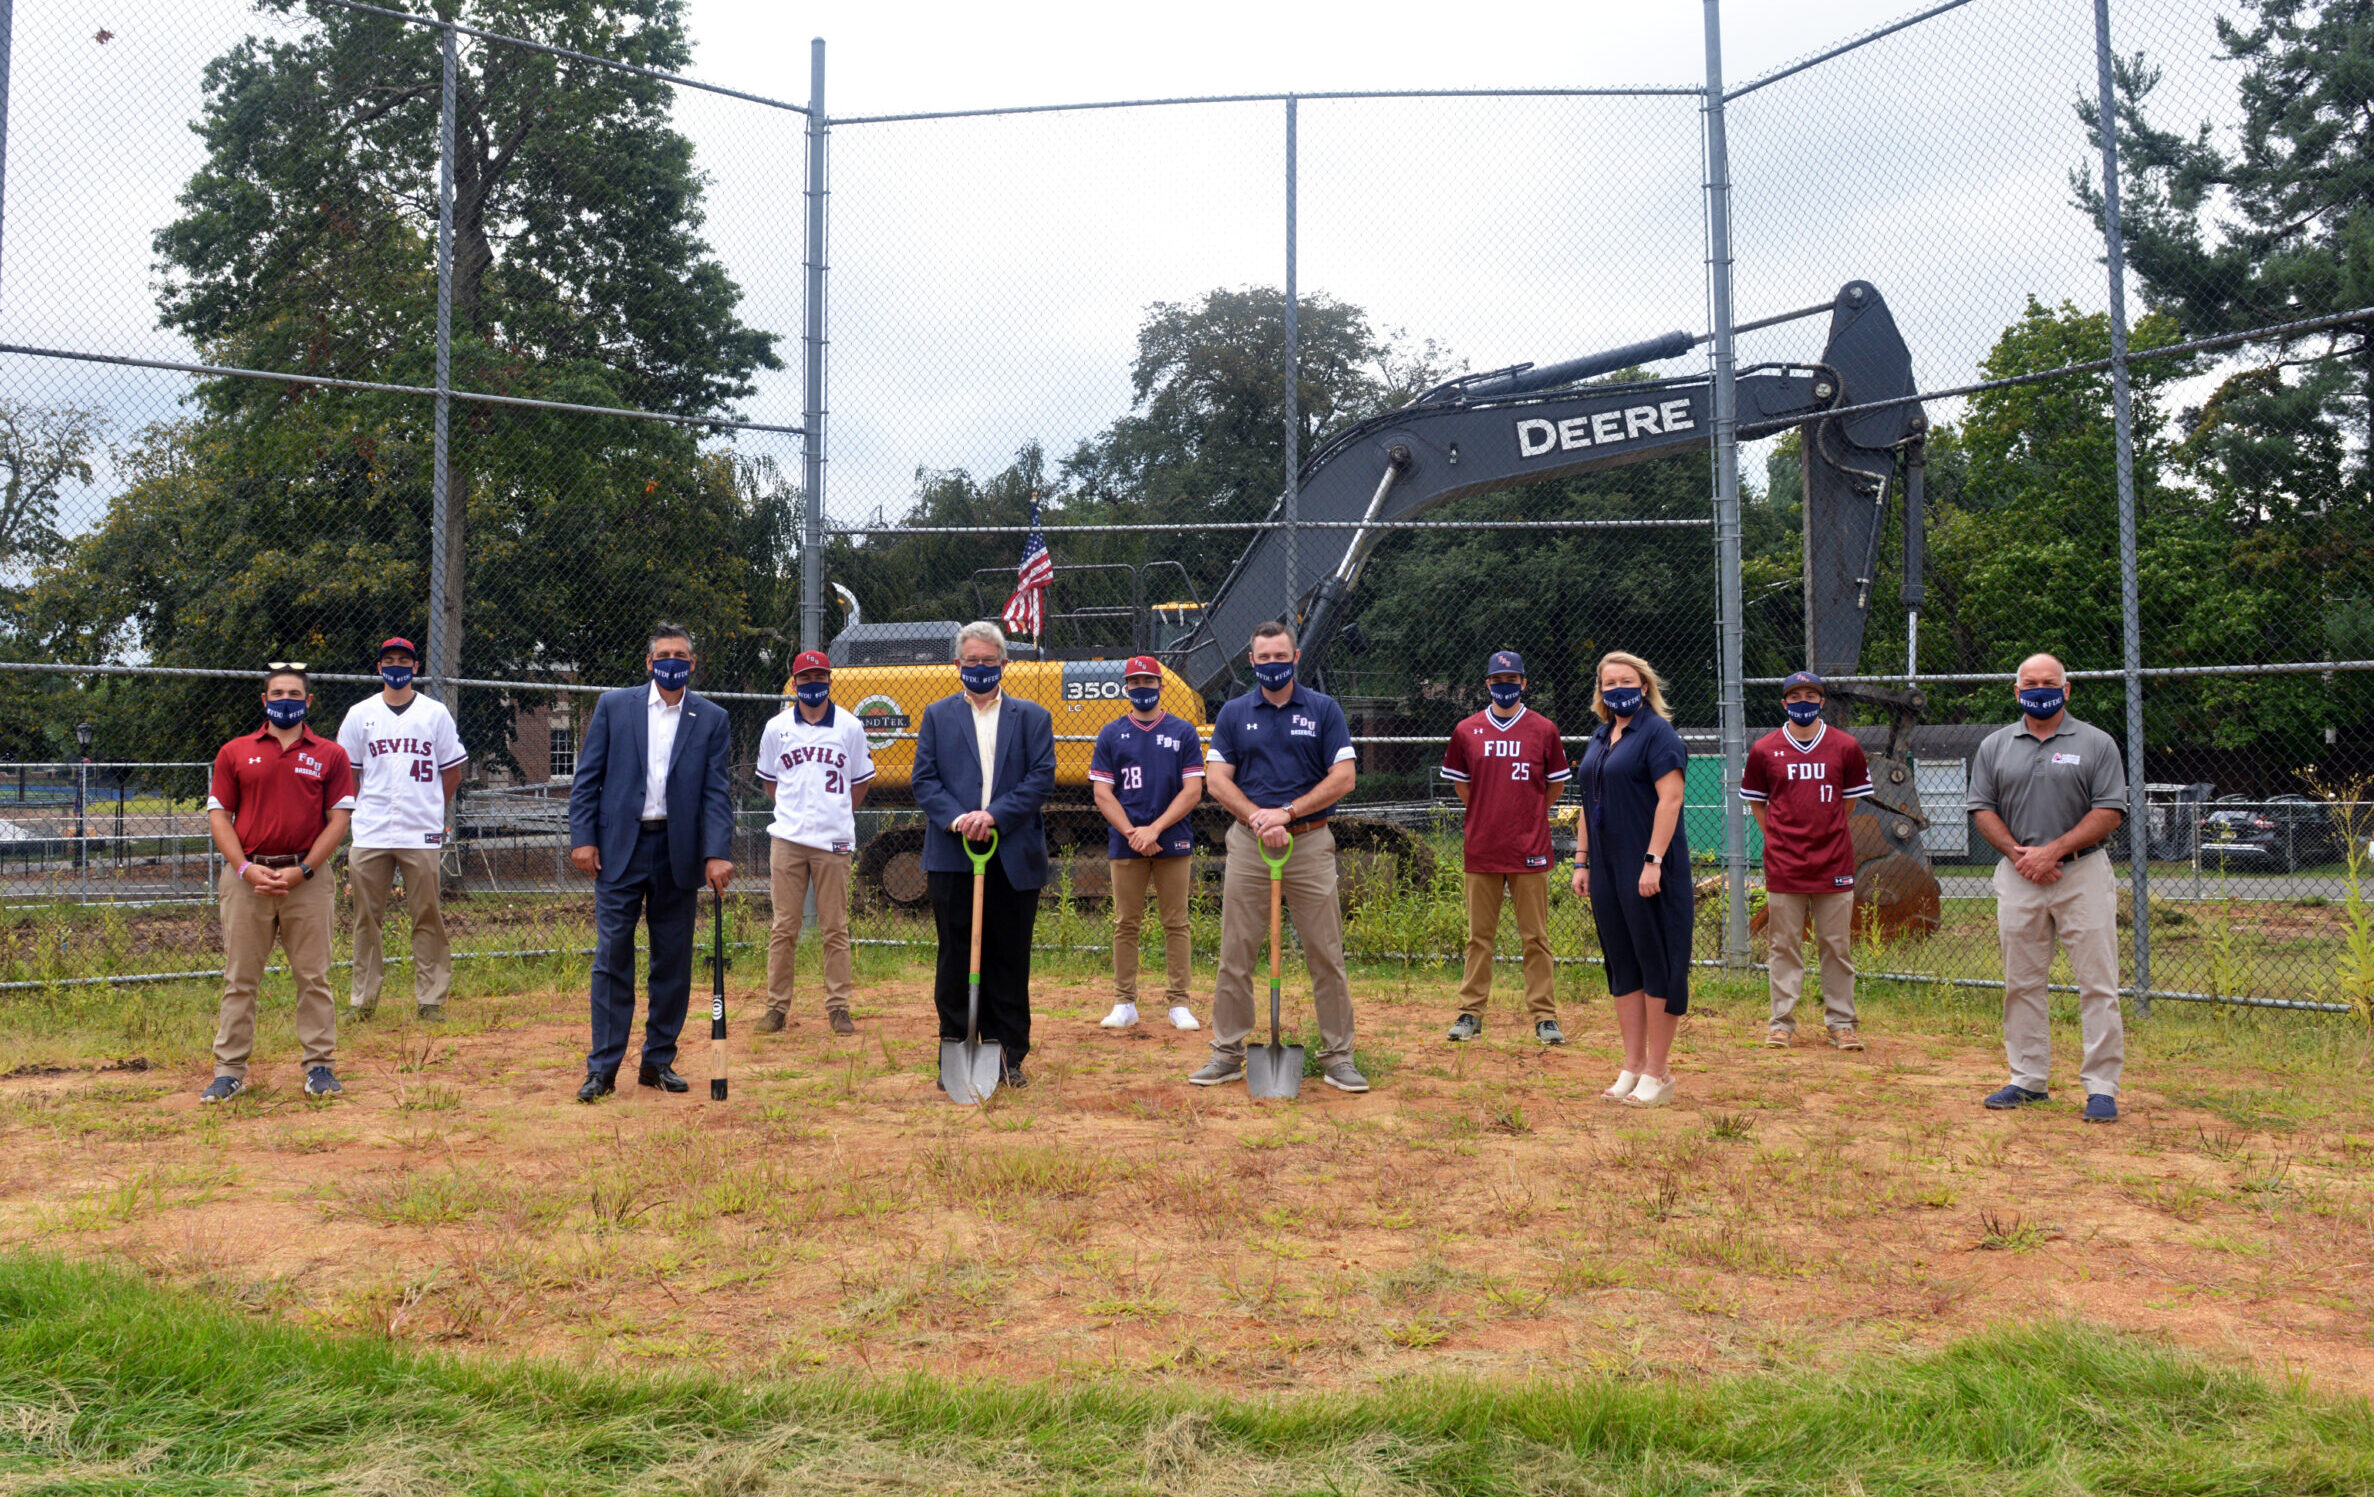 Members of the FDU Devils baseball team join University President Capuano, VP for Facilities & Auxiliary Services Dick Frick, head baseball coach Jamie Quinn, Director of Athletics Jenn Noon at the Naimoli Field groundbreaking at FDU's Florham Campus. Capuano holds a bat, Frick and Quinn hold shovels.